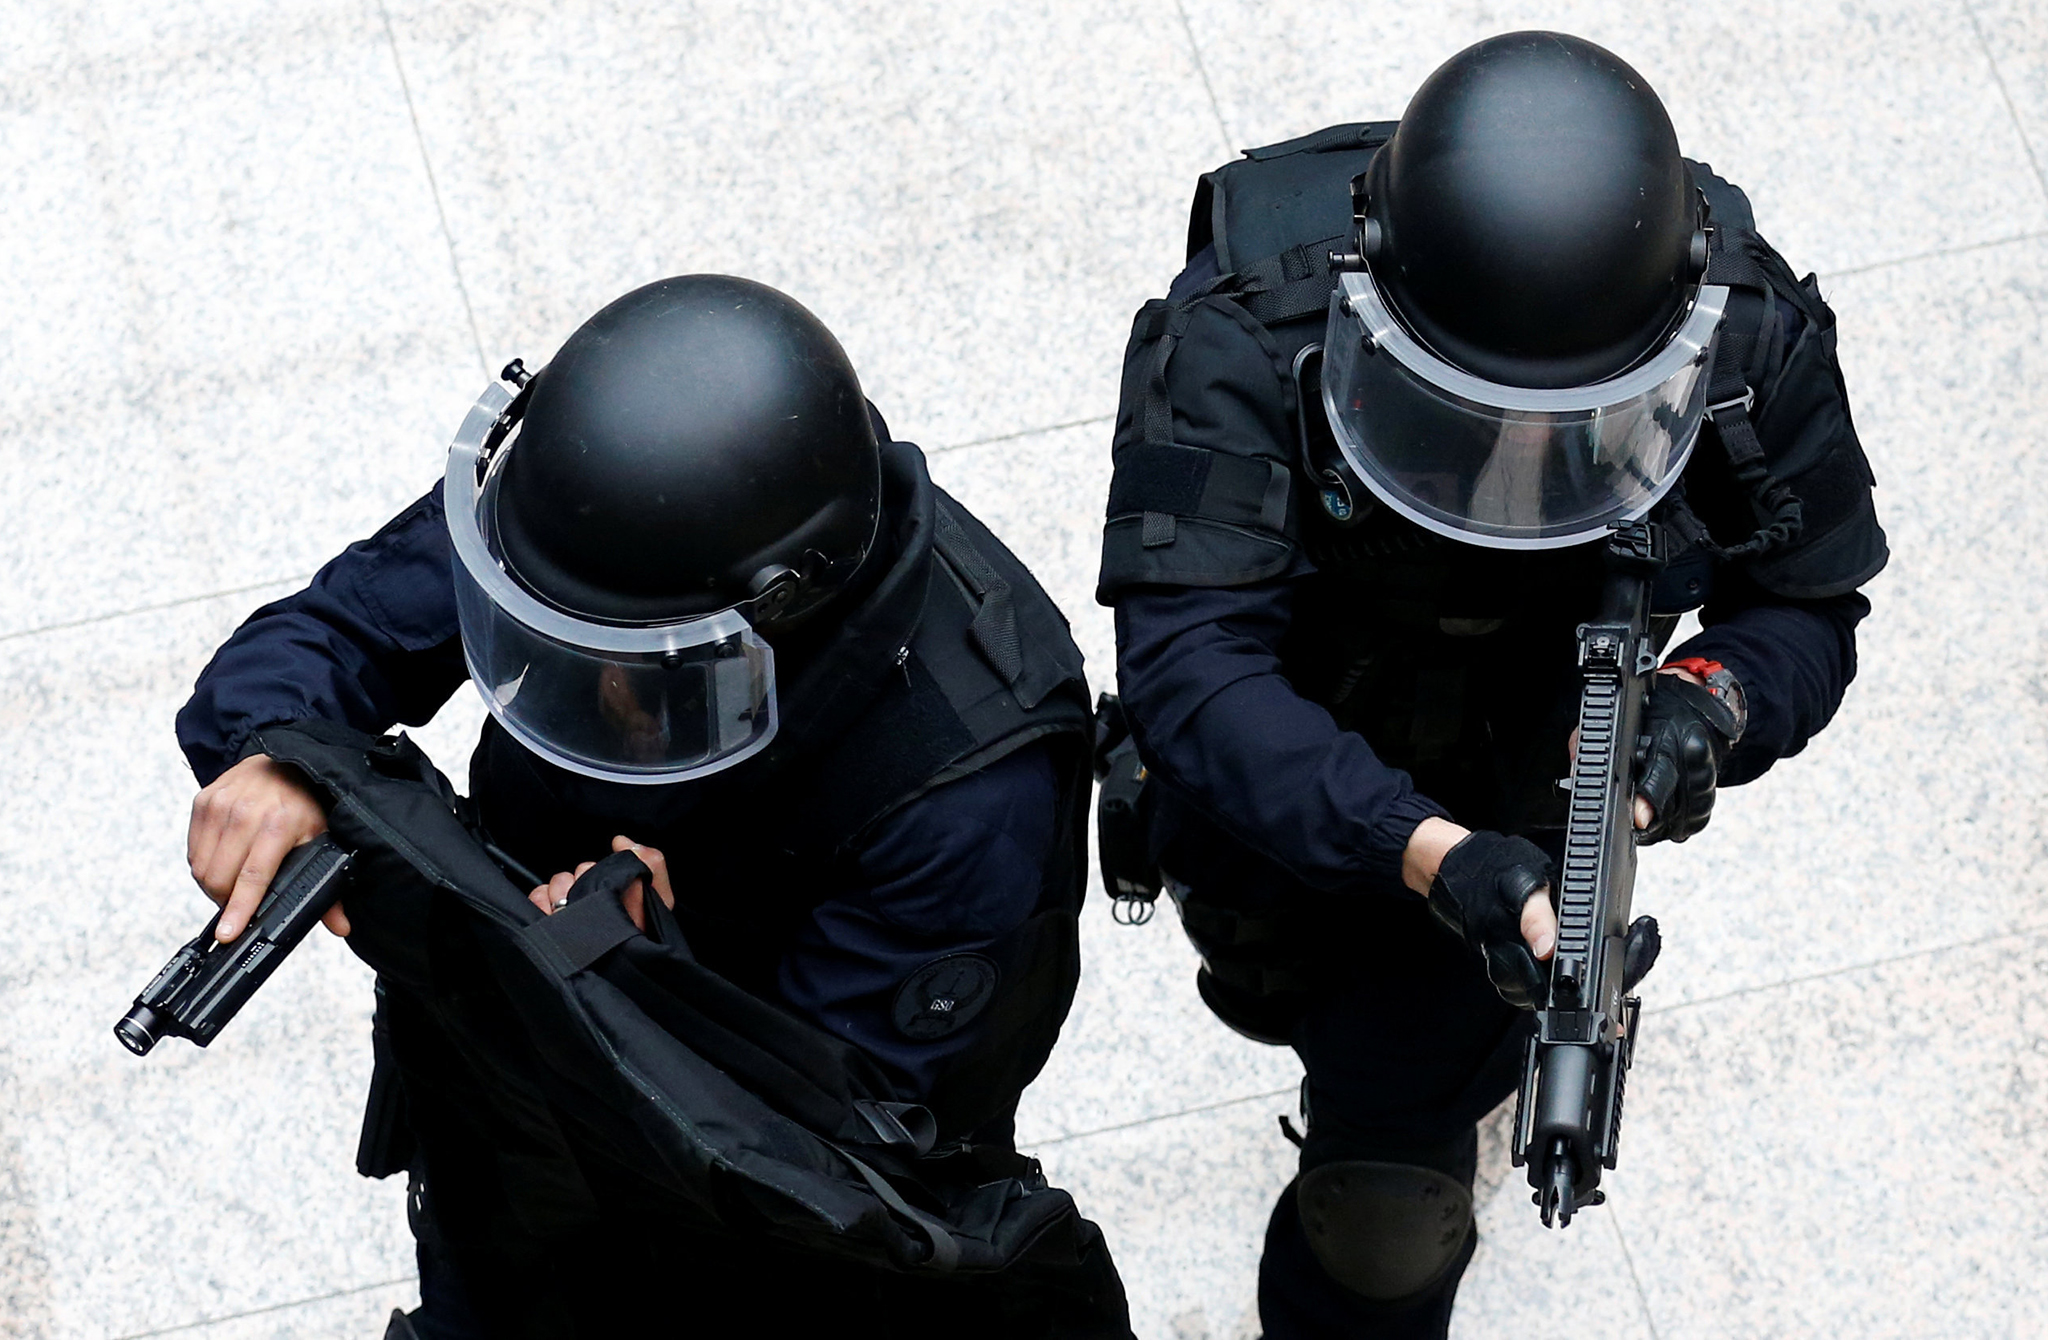 Members of French special police forces of Research and Intervention Brigade (BRI) take part in a mock terrorist attack inside the European Council building in Brussels, Belgium